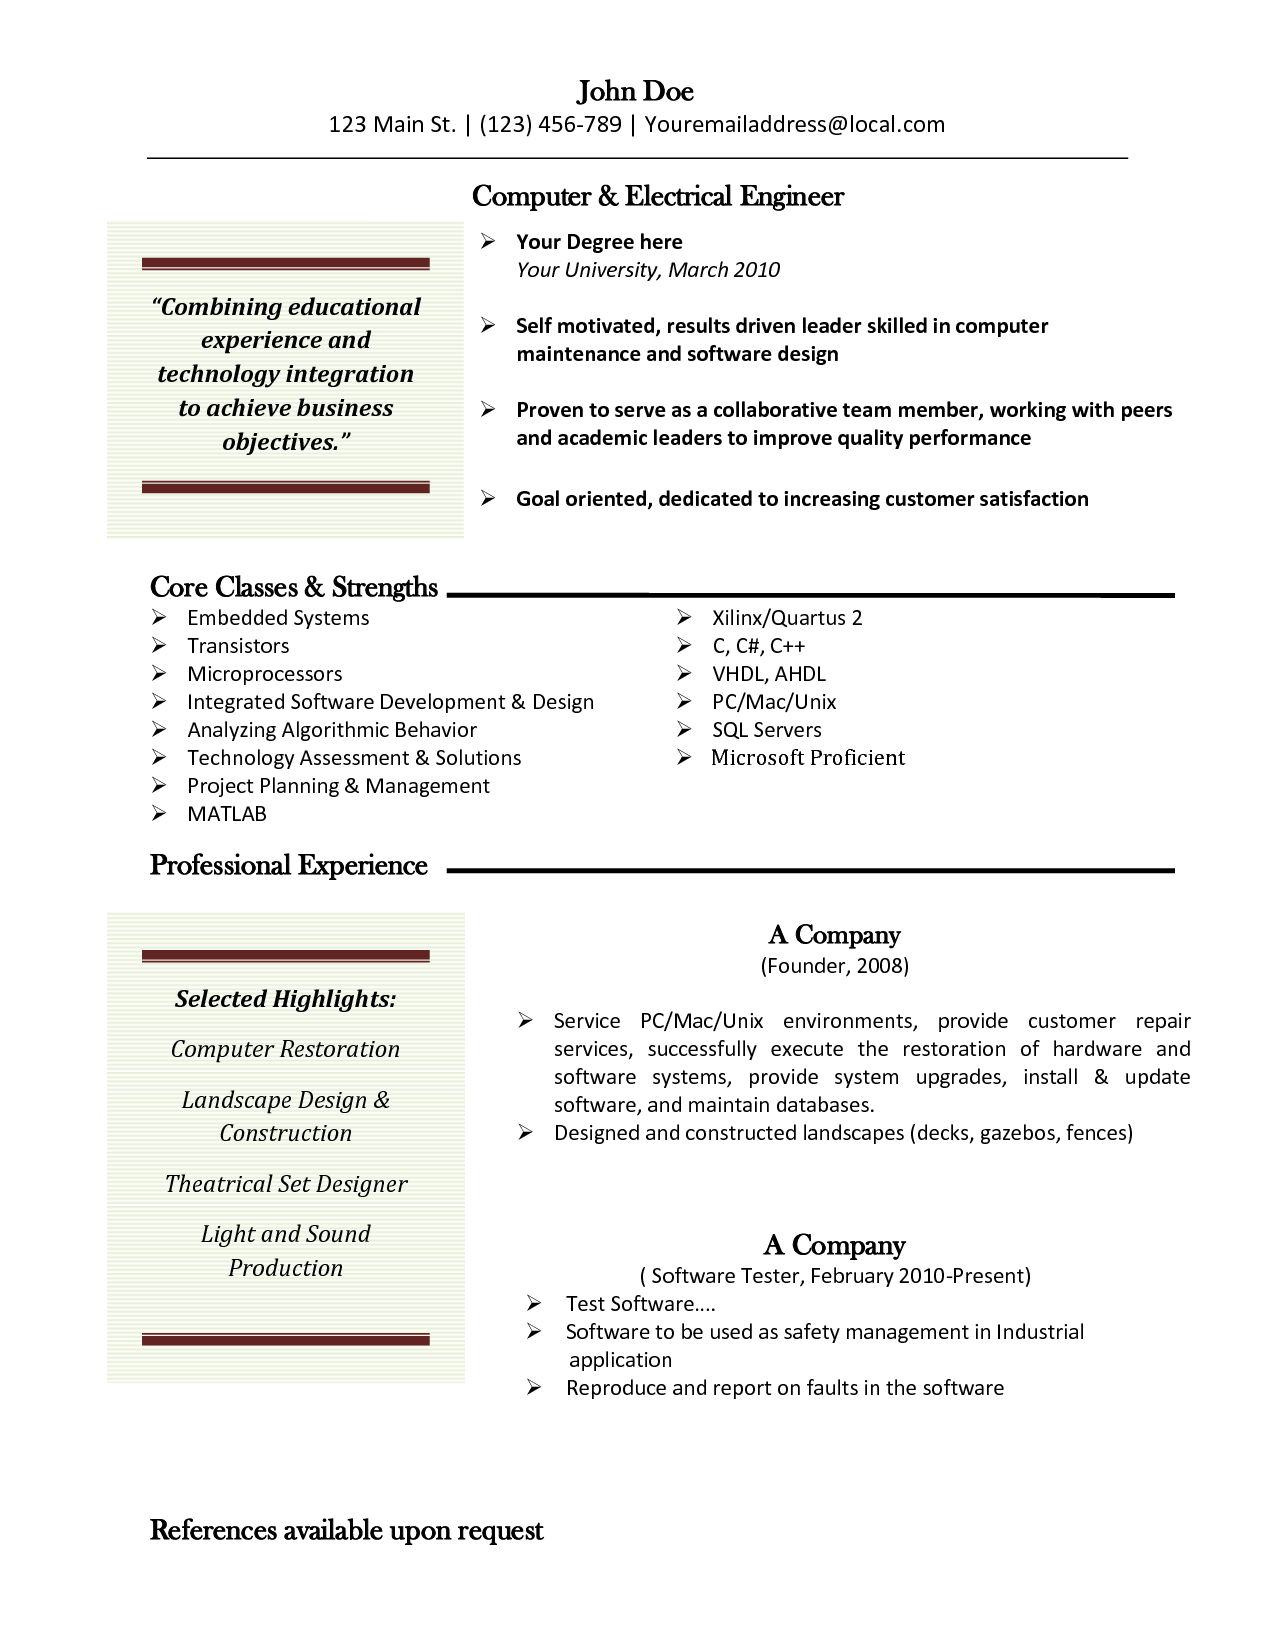 Sample Resume Templates Freeresumetemplatesformaccqjykibi 1275×1650  Cover